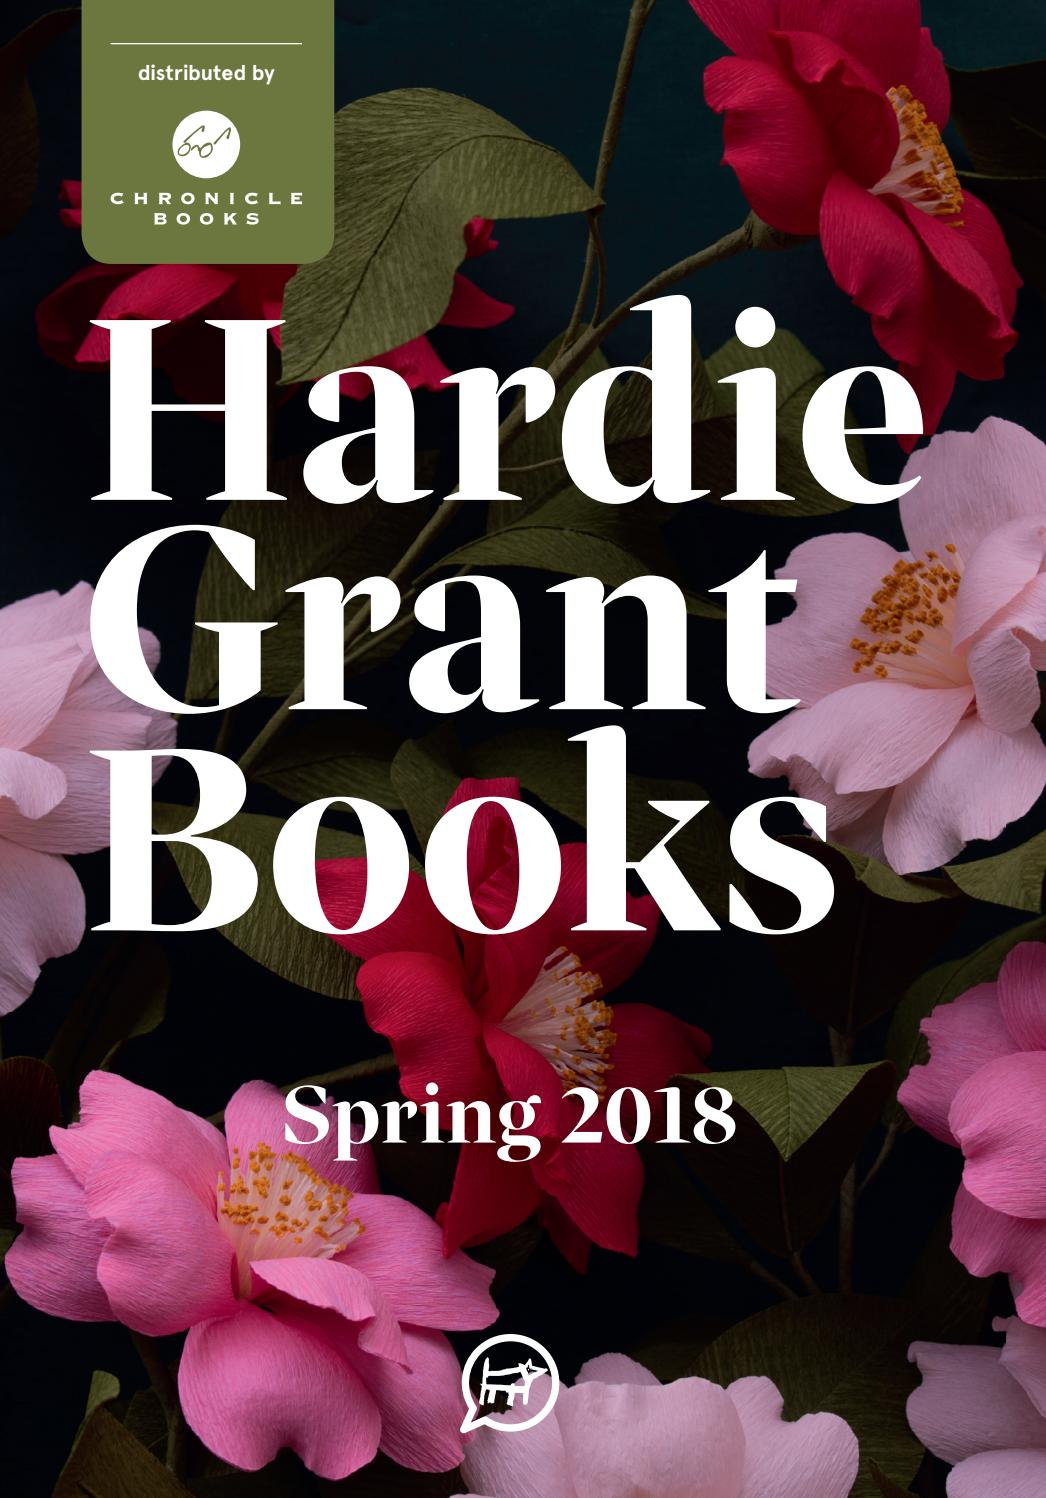 Hardie grant us catalog spring 2018 by Hardie Grant Books - issuu